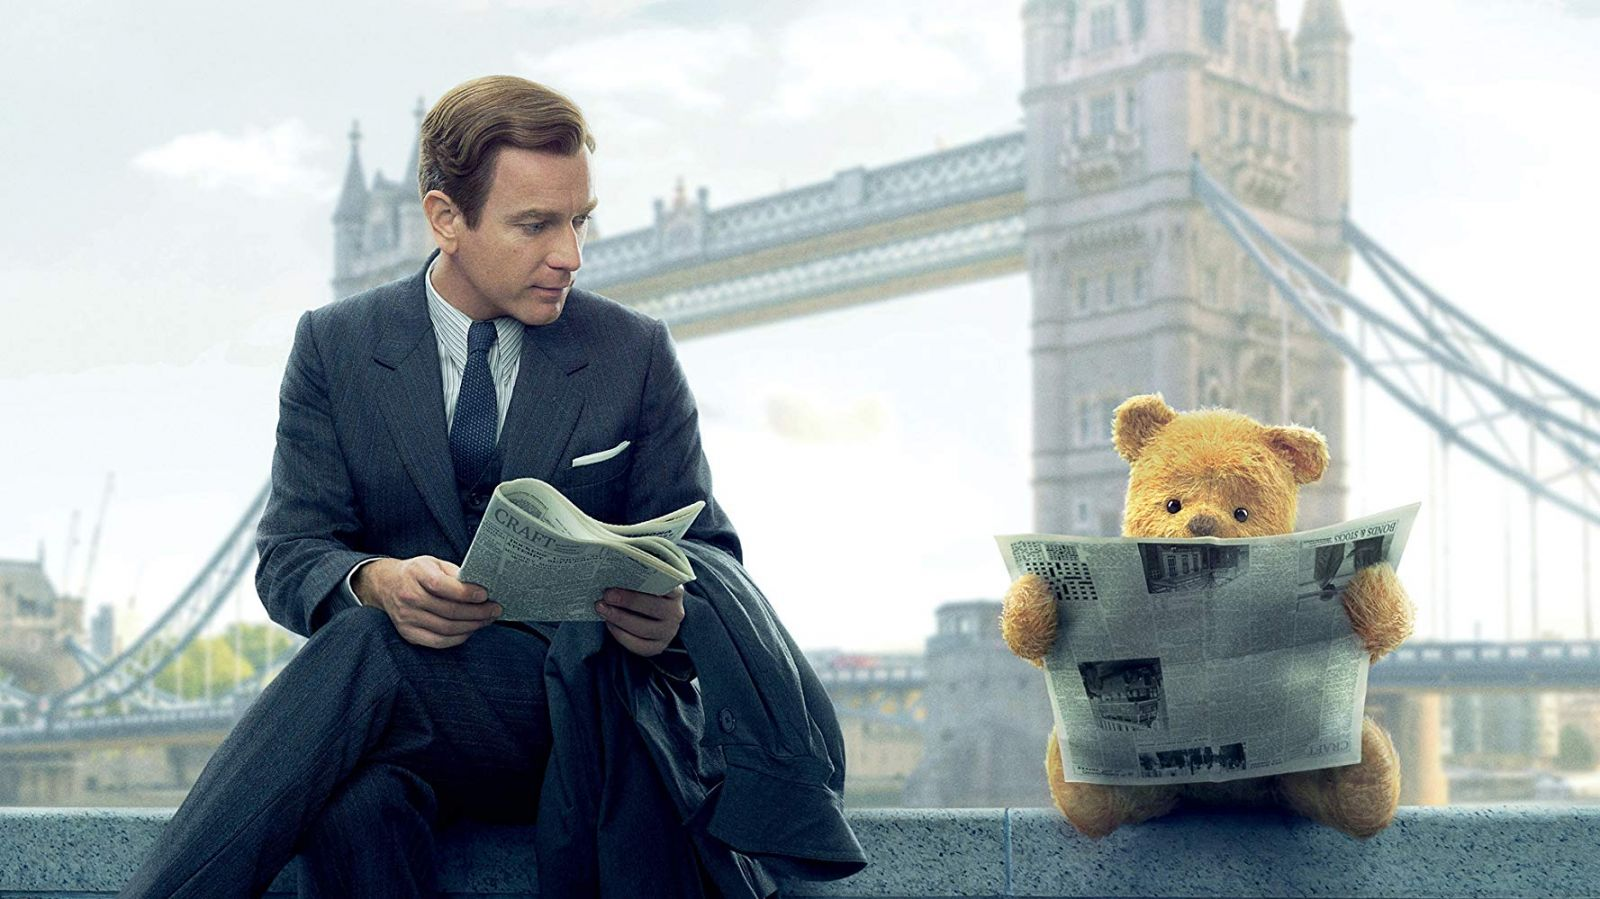 winie_the_pooh_christopher_robin_london_bridge